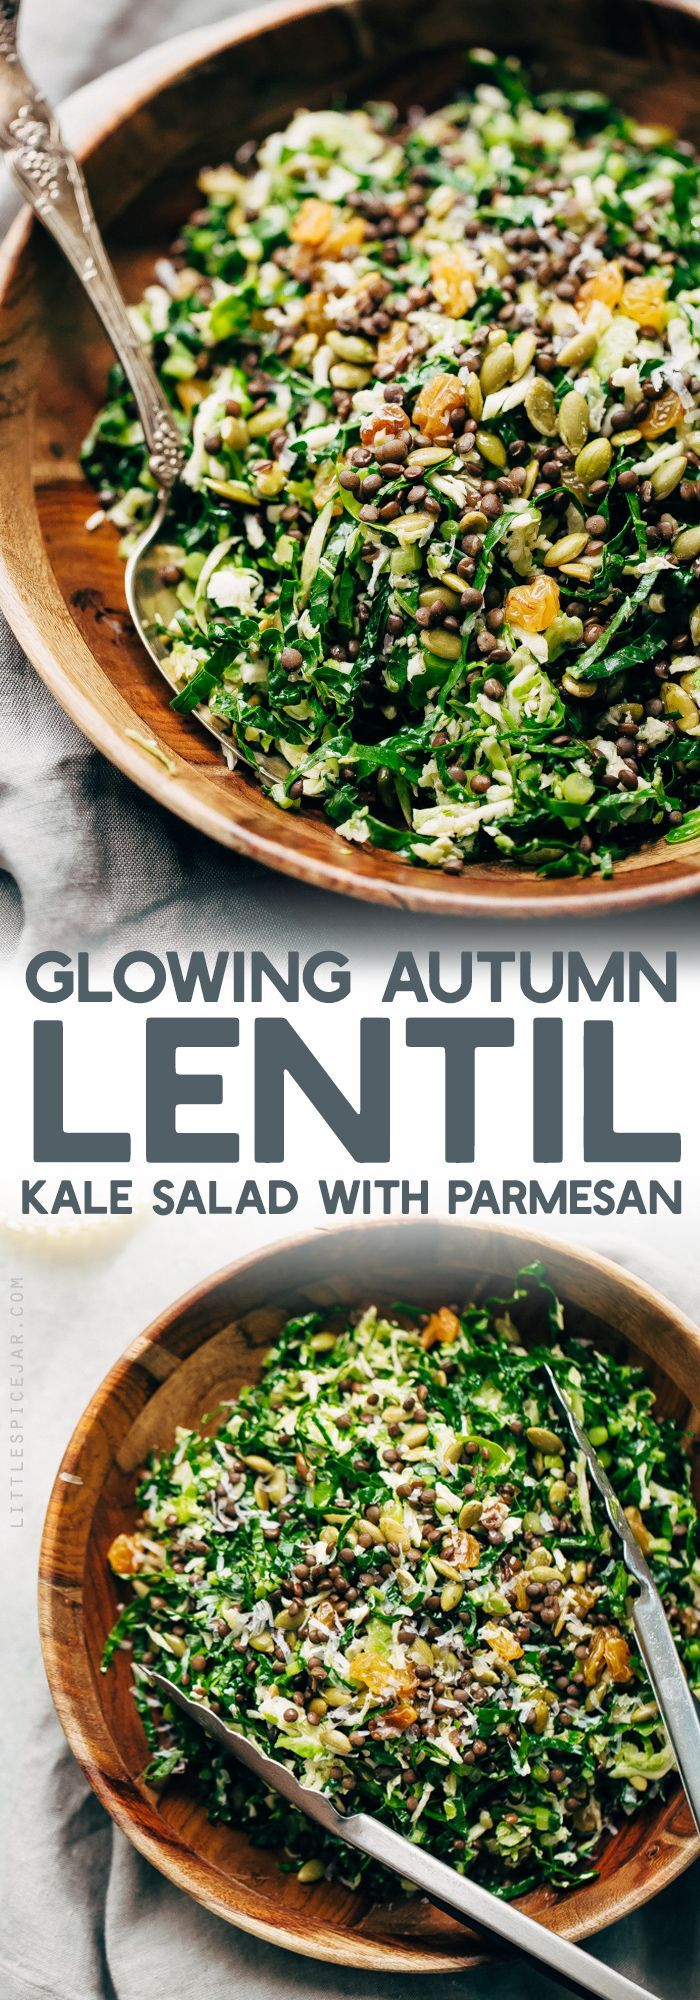 Autumn Lentil Kale Salad with Parmesan - this salad is hearty and filling and perfect for your Thanksgiving table with all it's beautiful colors! #sponsored by @usapulses and @pulsecanada #lentilkalesalad #kalesalad #lentilsalad | Littlespicejar.com